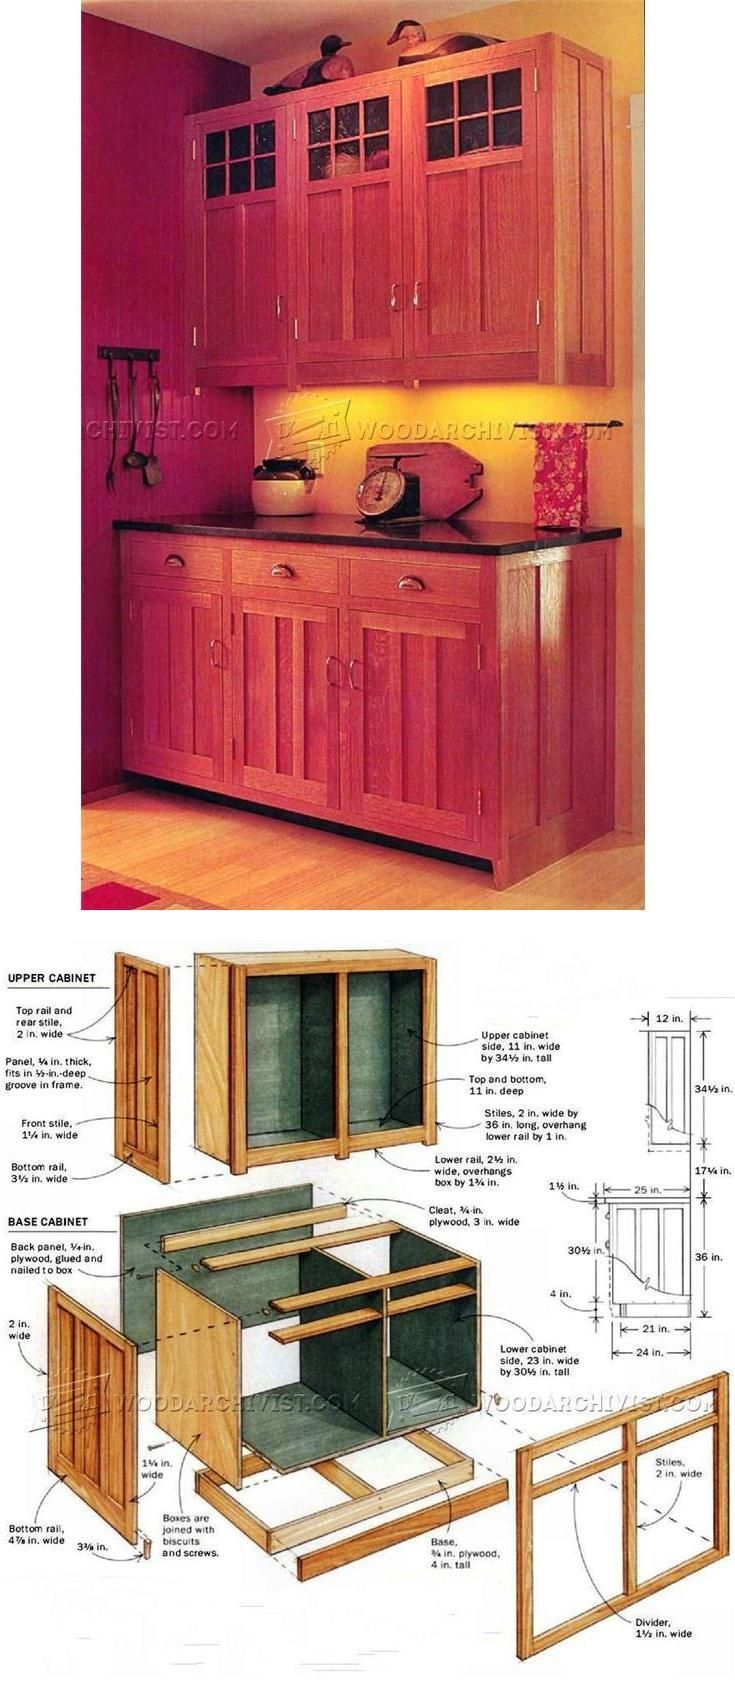 Kitchen Cabinets Plans Furniture Plans And Projects Kitchen Cabinet Plans Diy Kitchen Remodel Furniture Plans